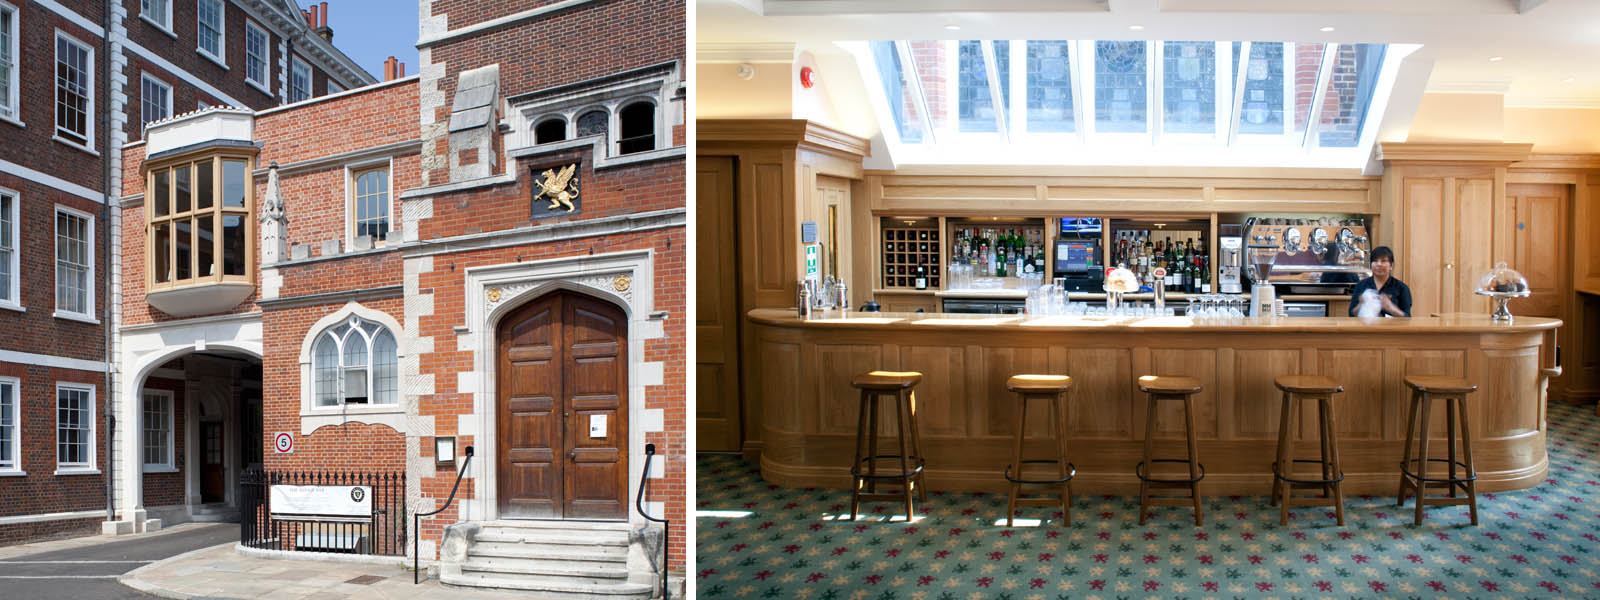 Image: The Bridge Bar Grays Inn